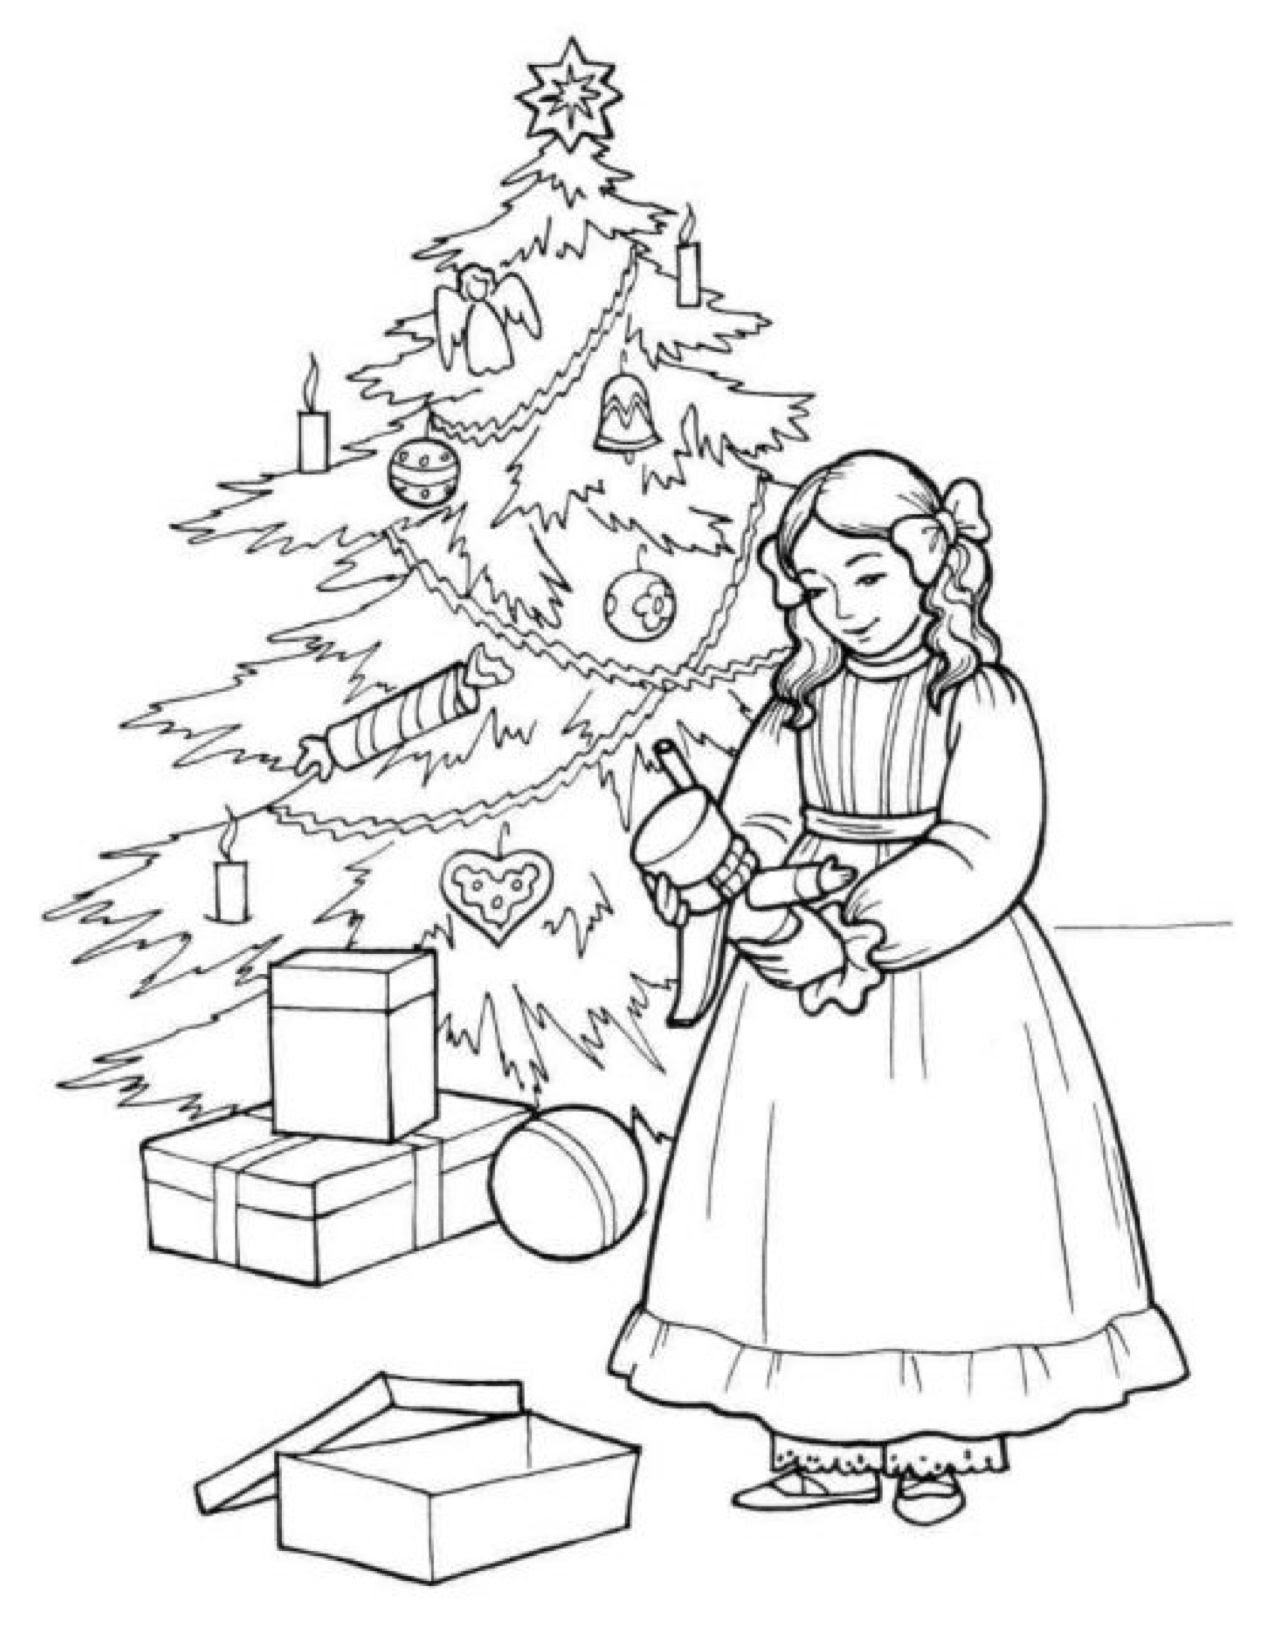 Sugar Plum Fairy Coloring Page at GetColorings.com | Free ...